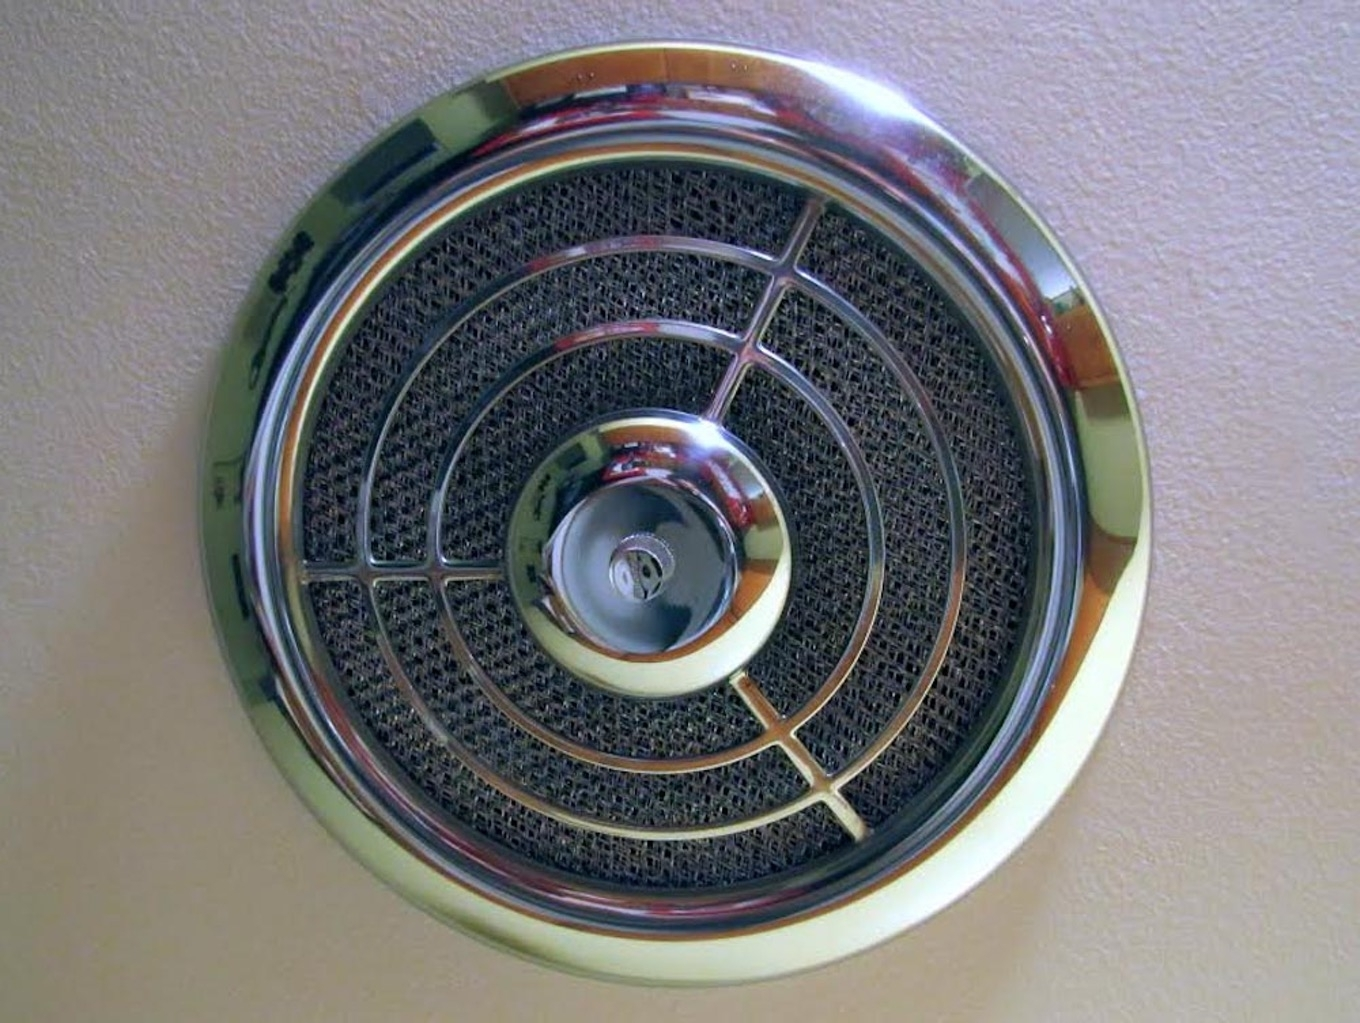 Bathroom Exhaust Fan Cover Nutone Ceiling Fan Cover Review Home Co